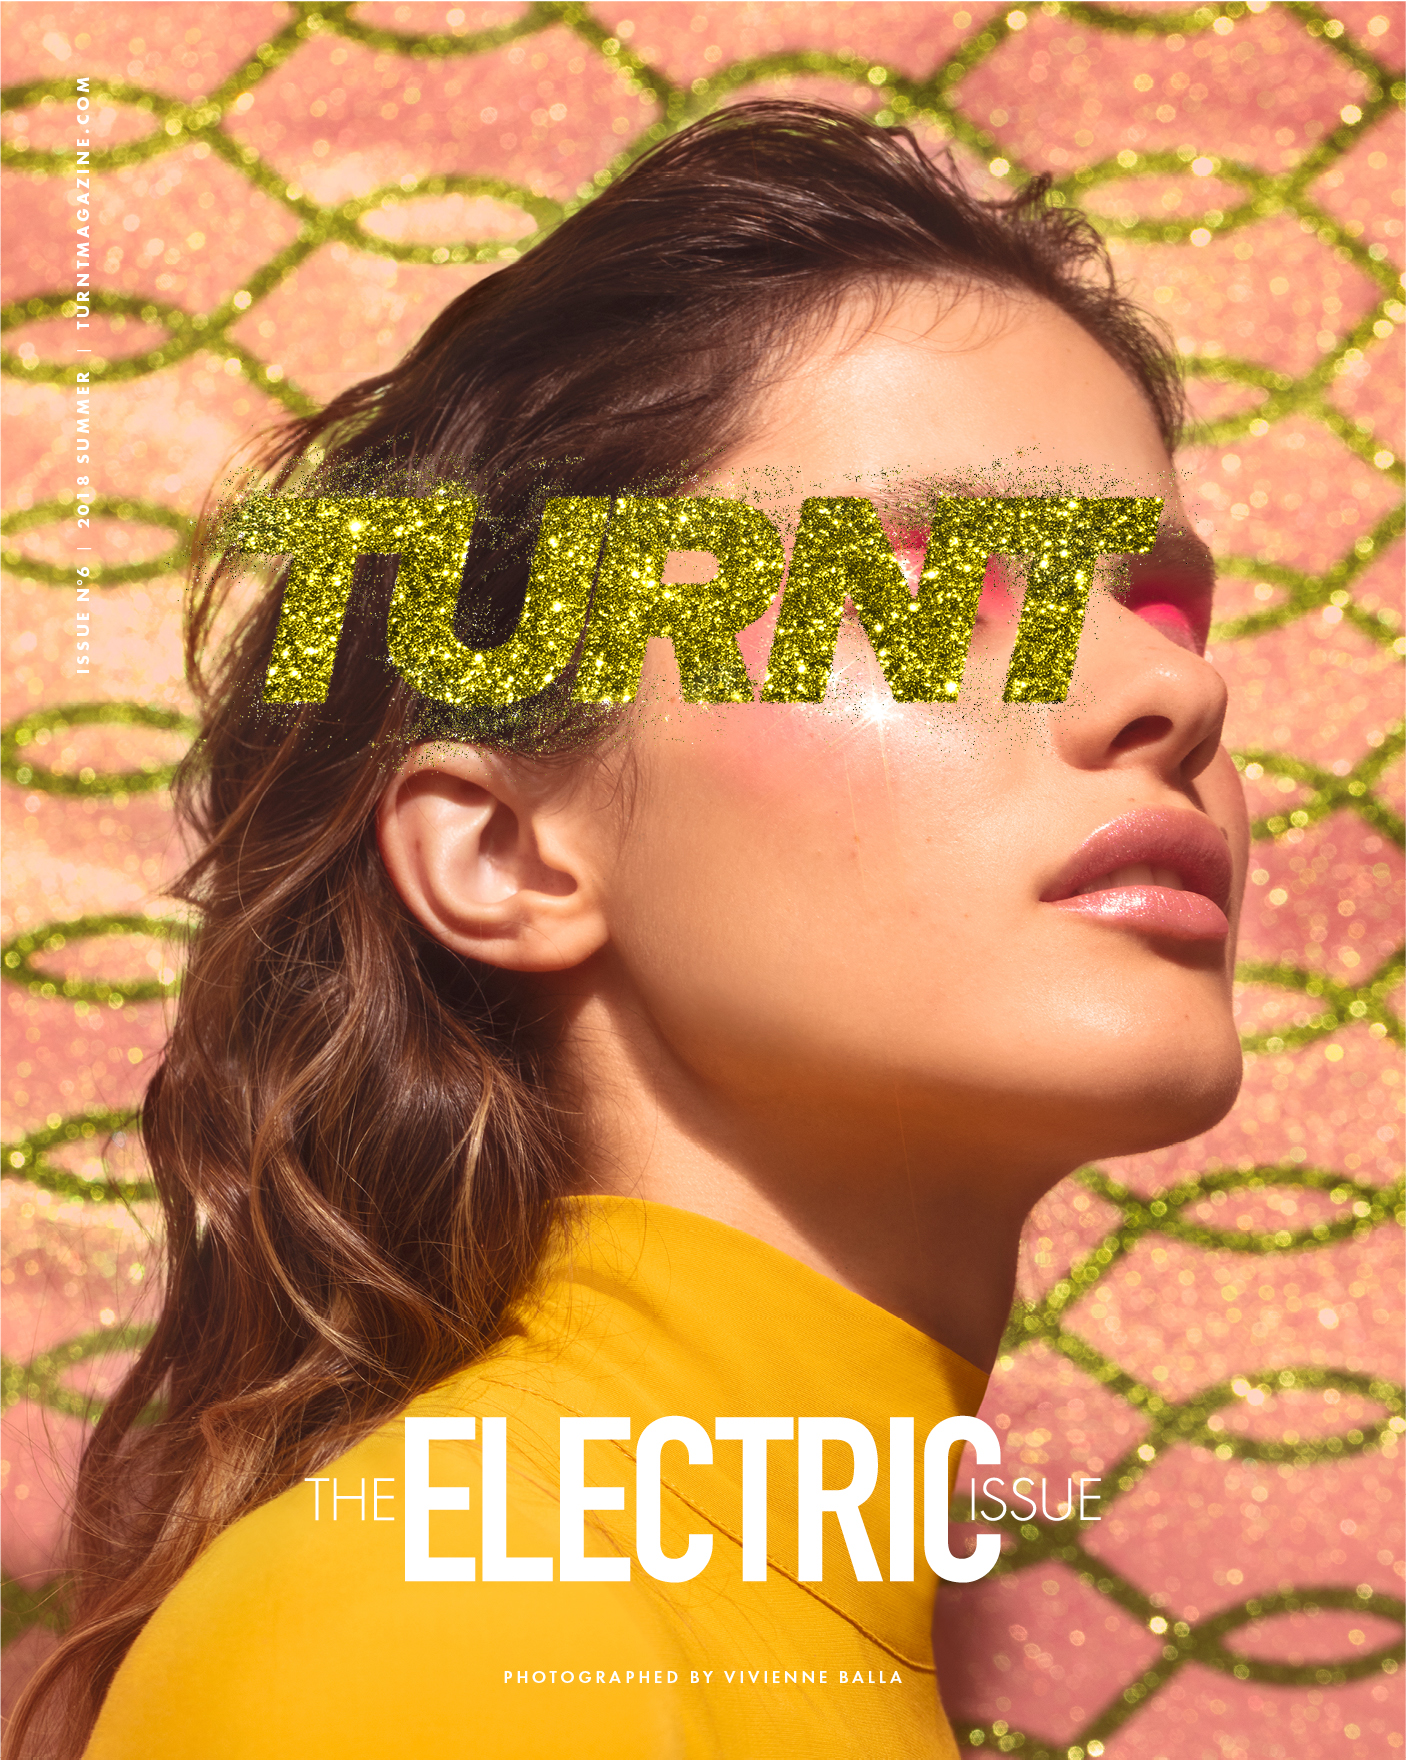 turnt-06-theelectricissue-page